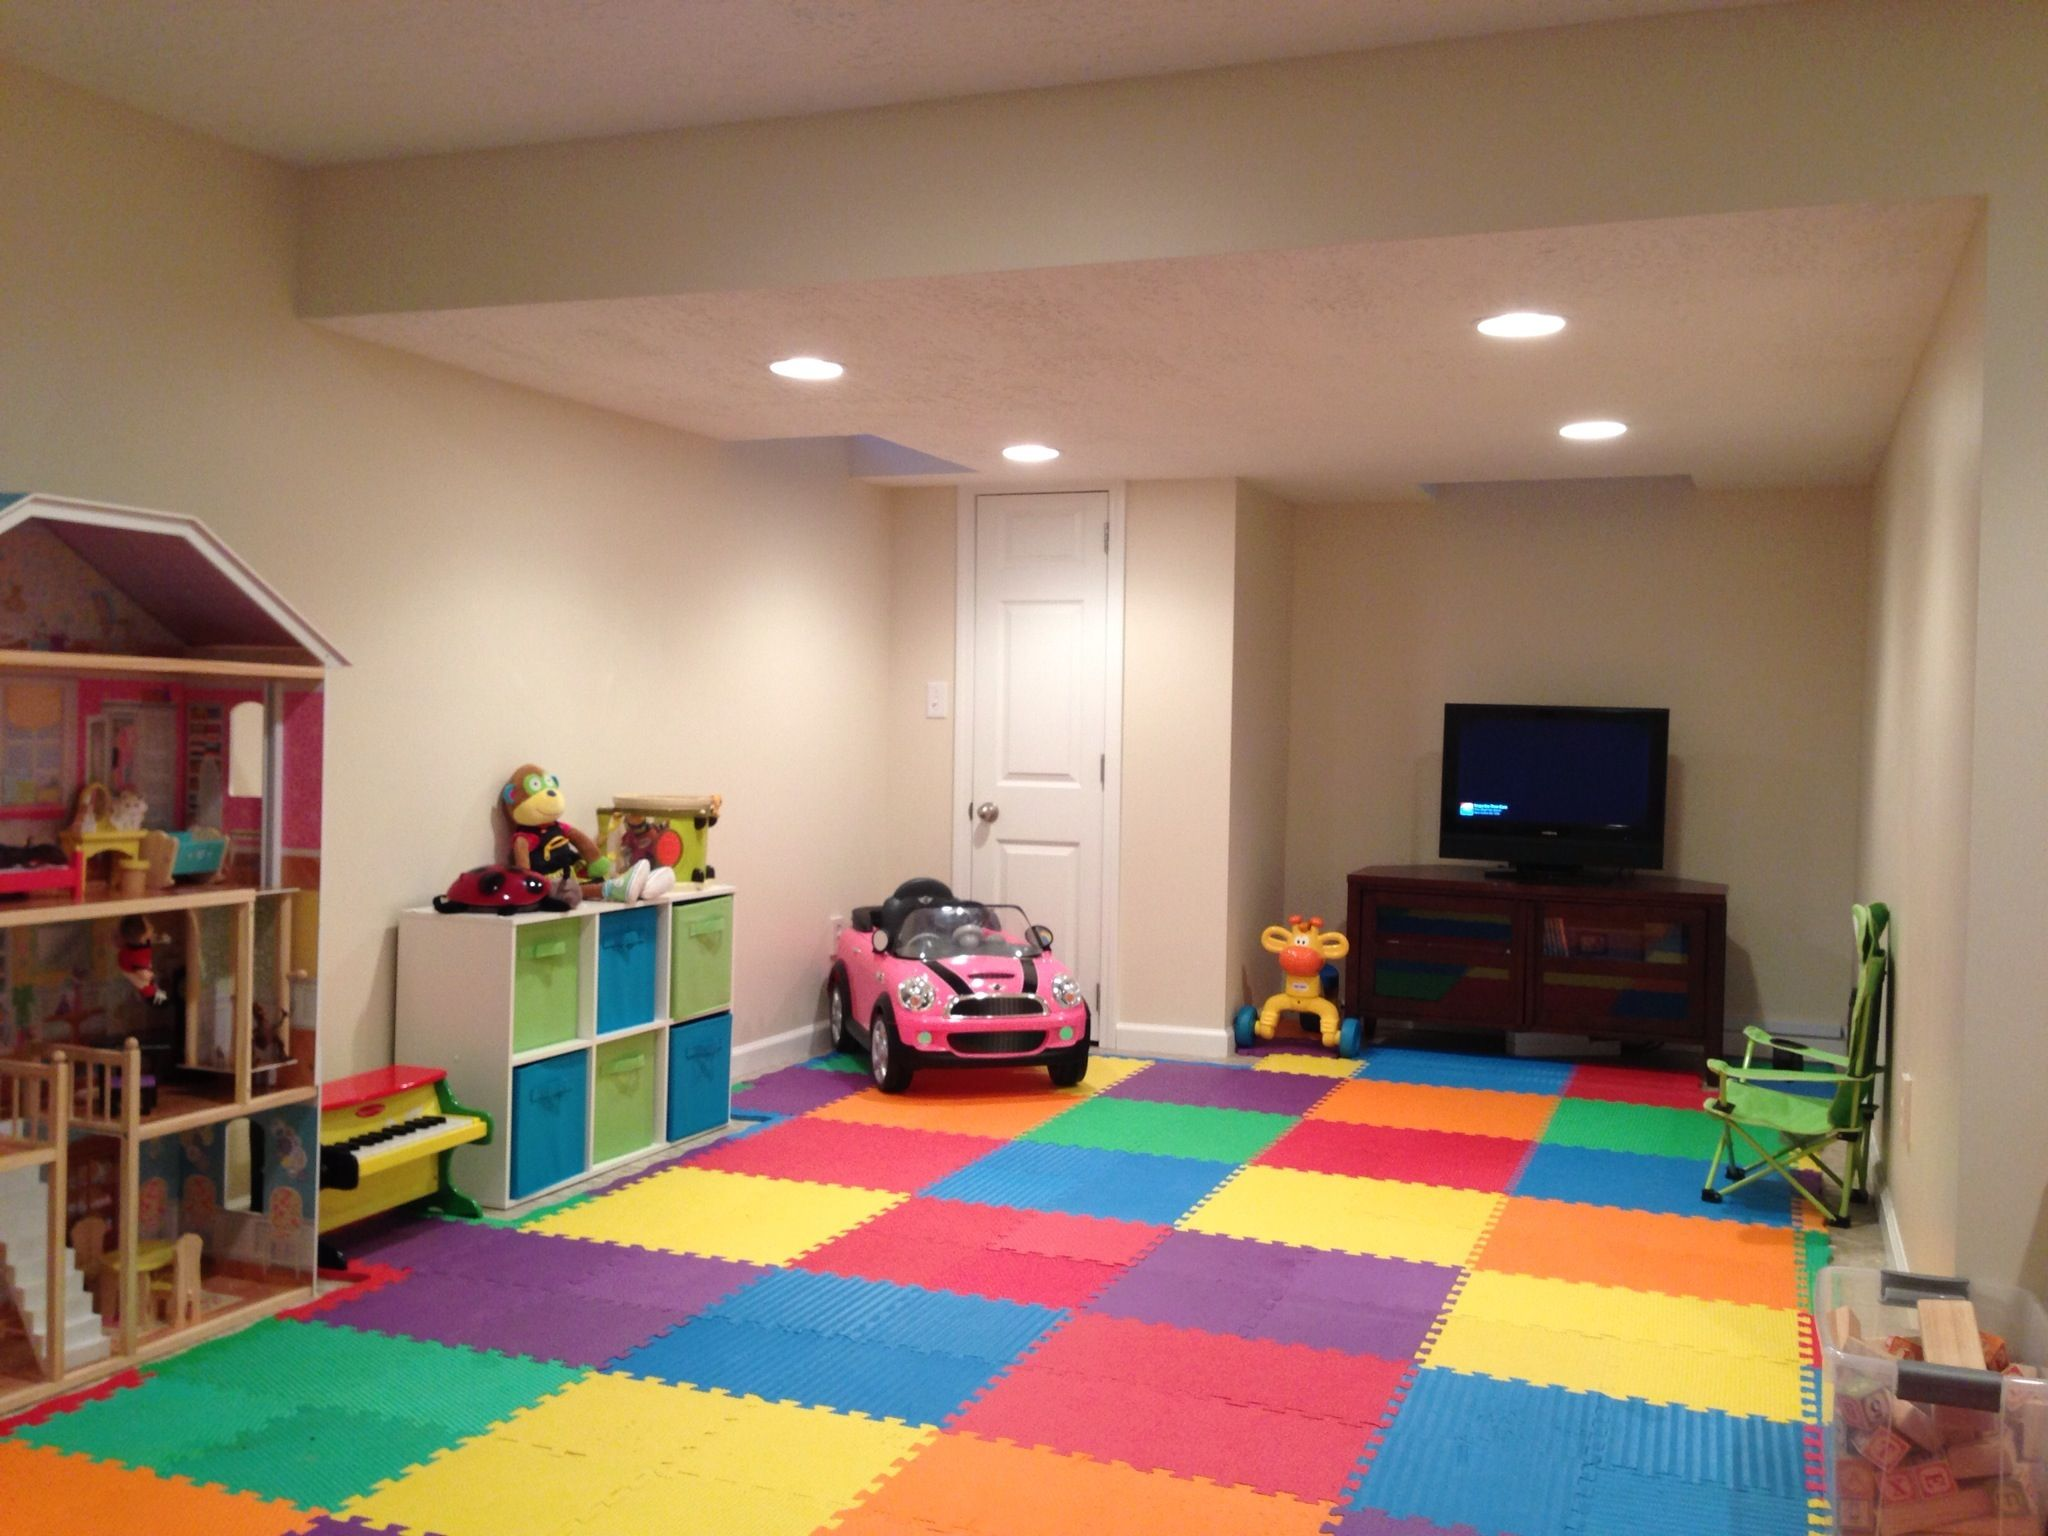 Finished Basement Playroom Project Foam Puzzle Flooring From One